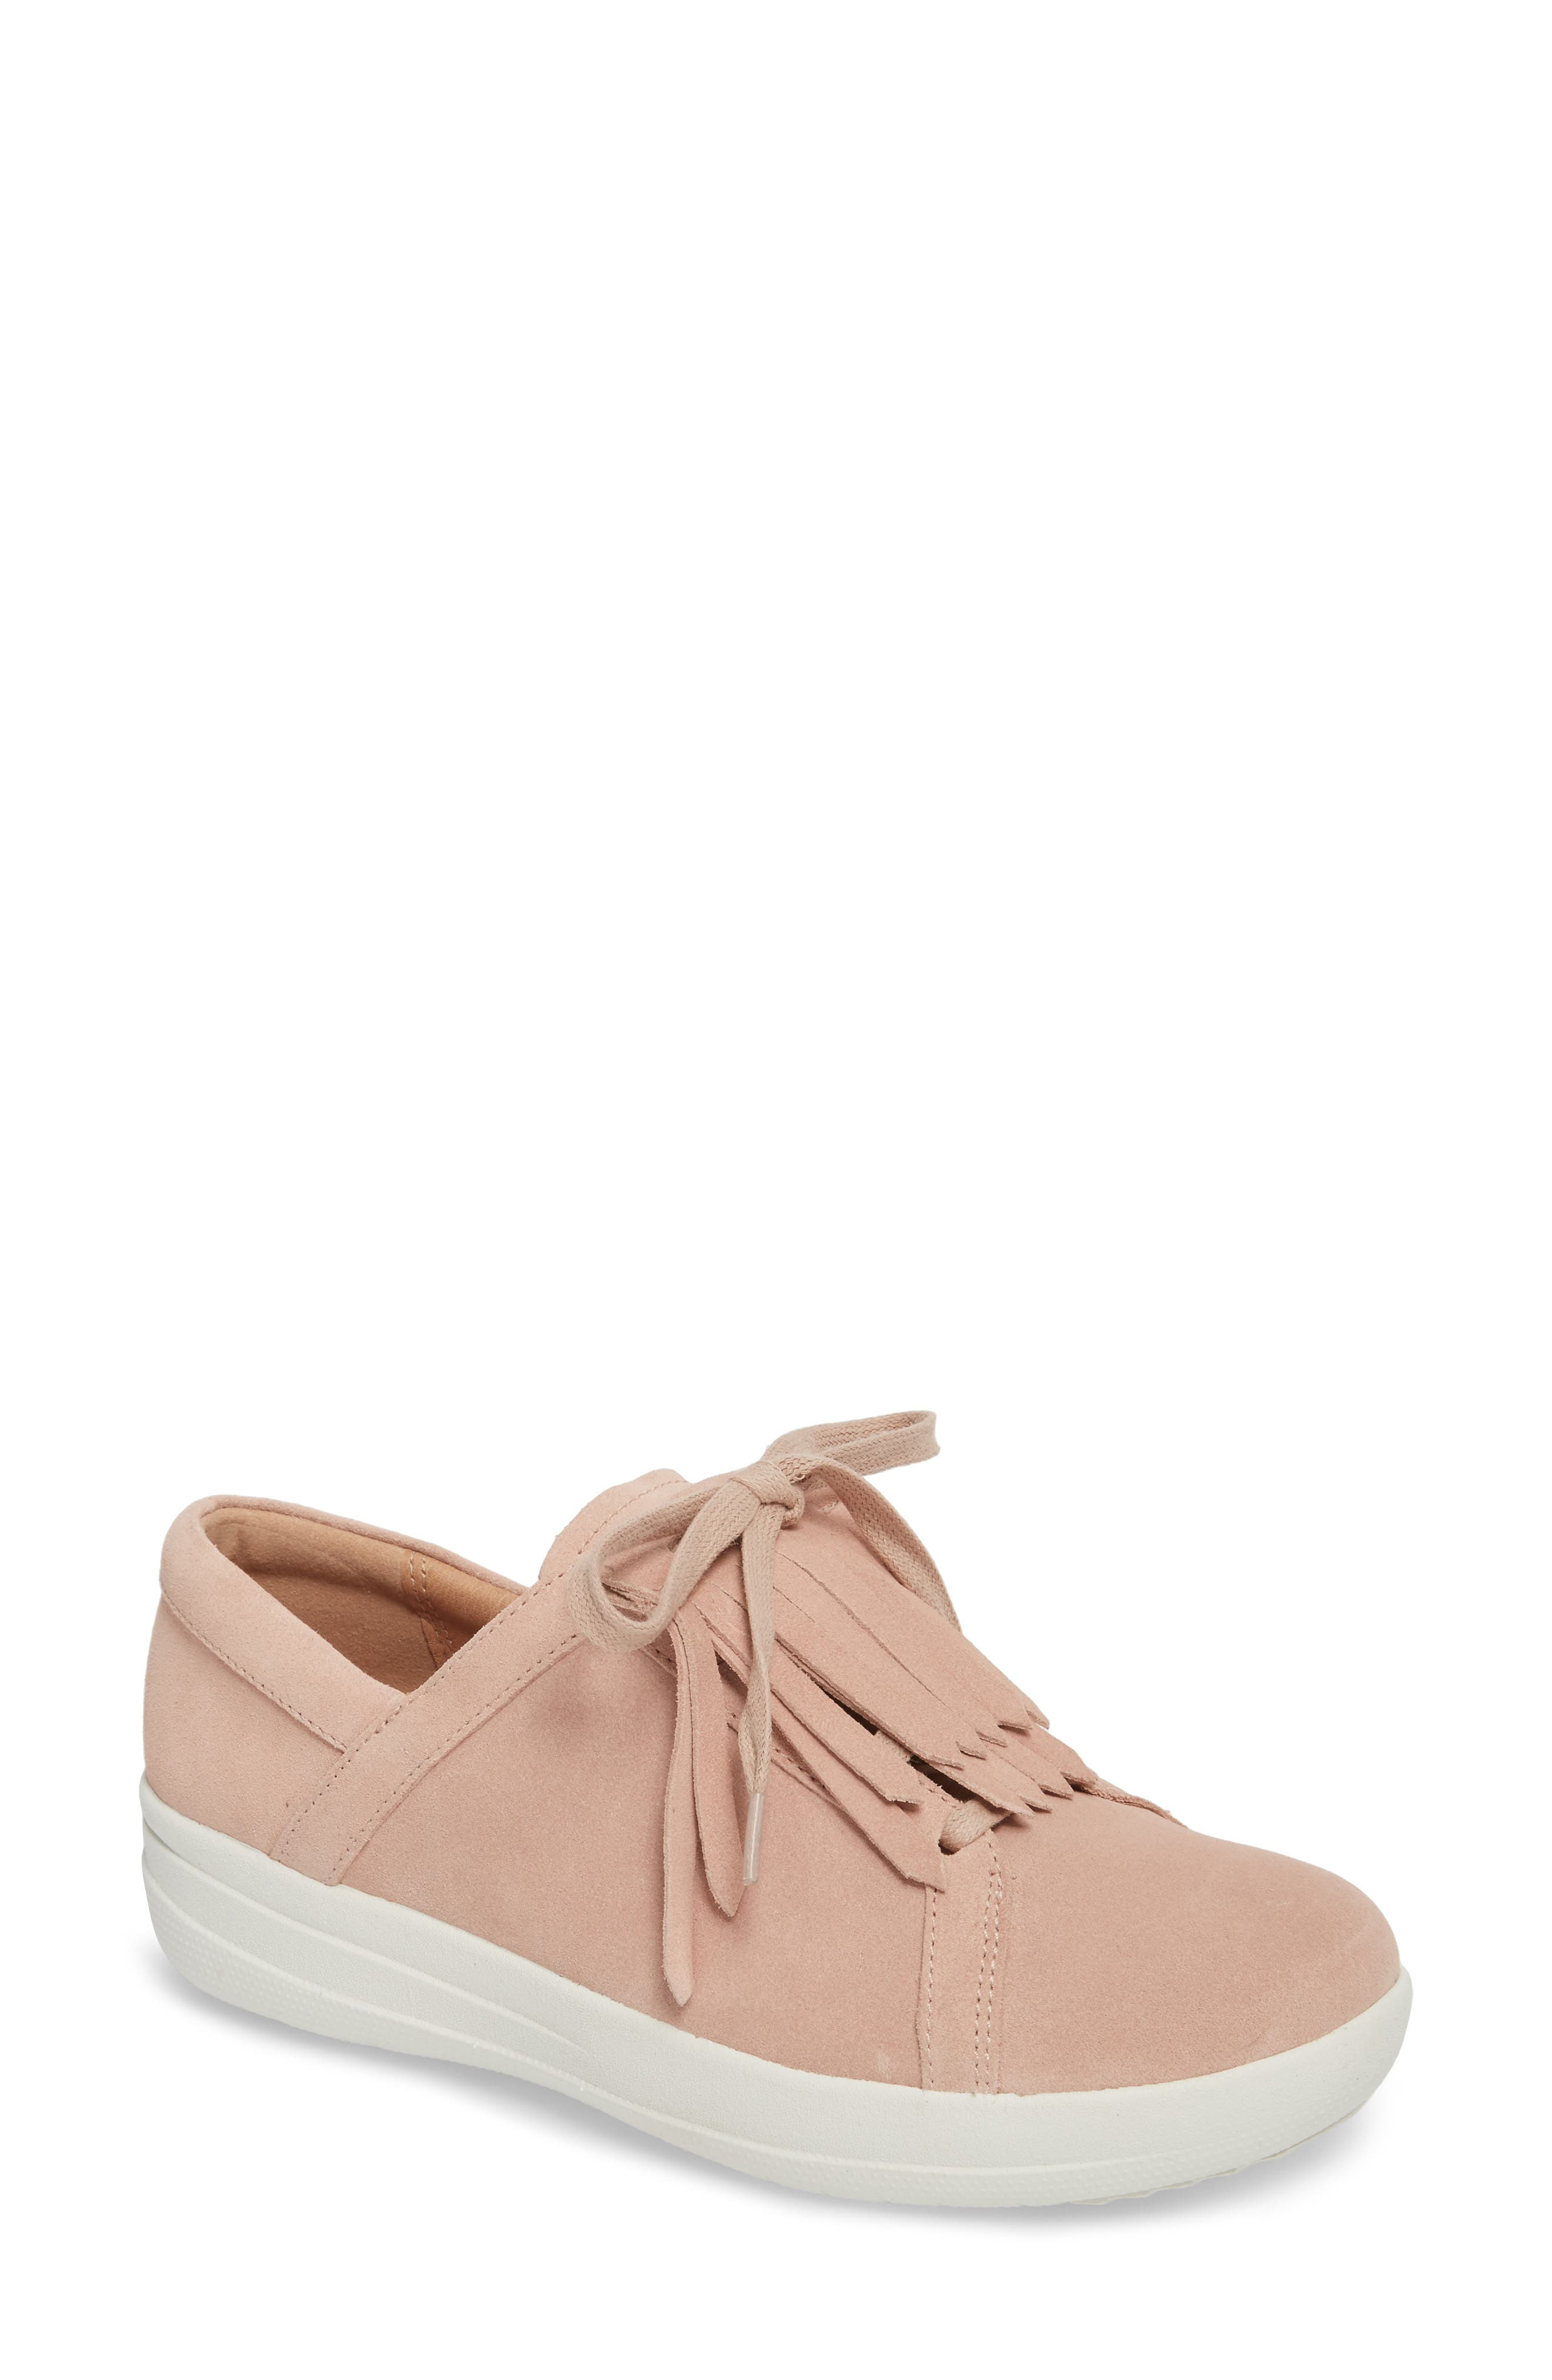 F-Sporty II Fringe Slip-On,                             Main thumbnail 1, color,                             Dusky Pink Leather